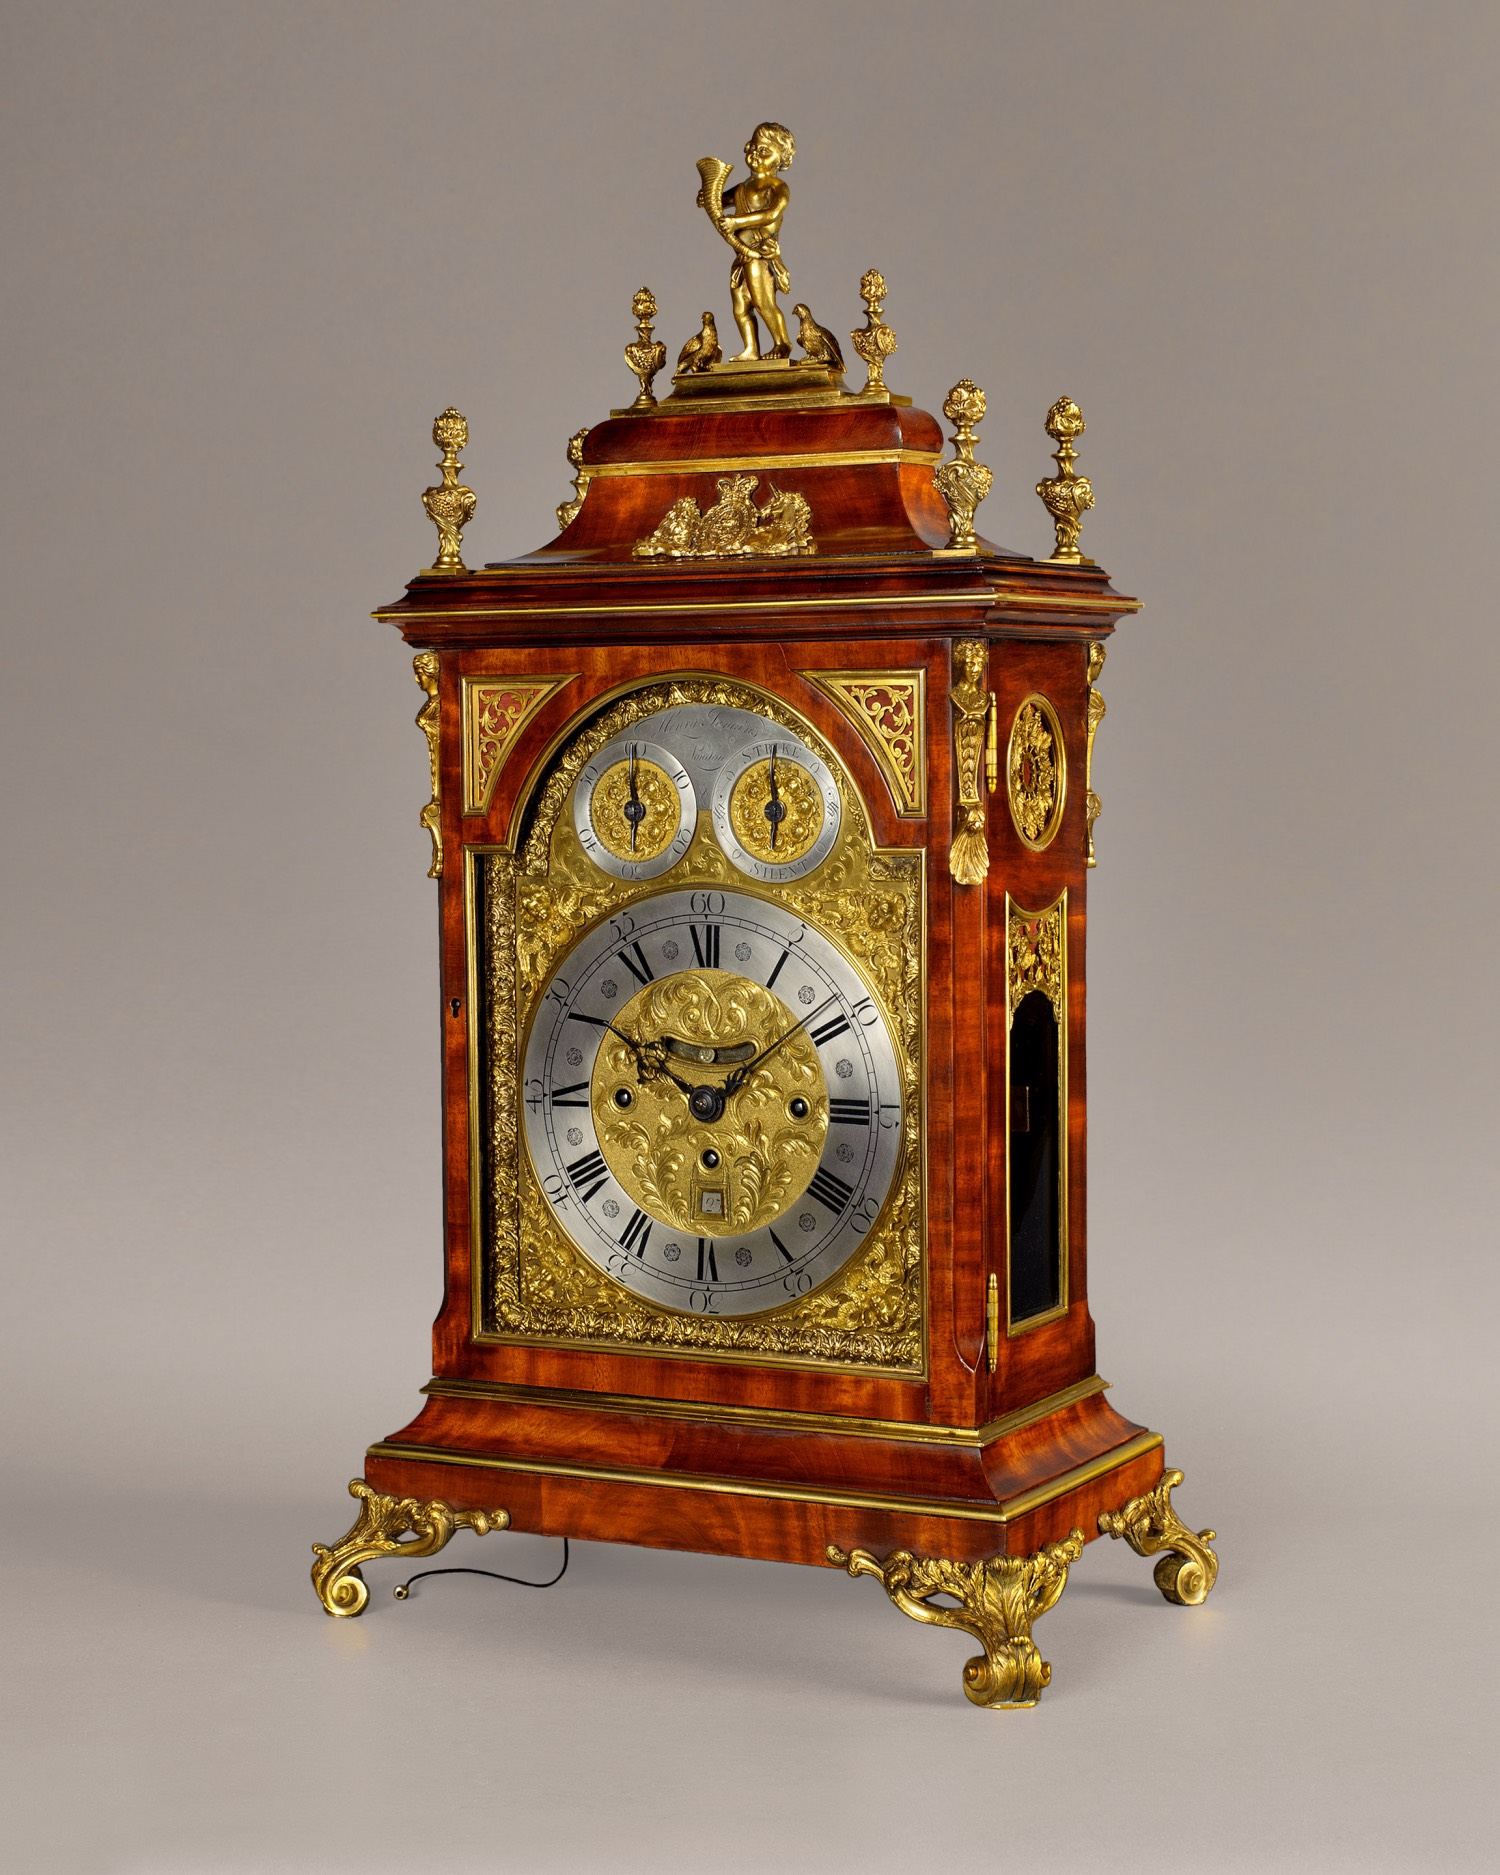 HENRY JENKINS. An important palace quality George III period mahogany table clock